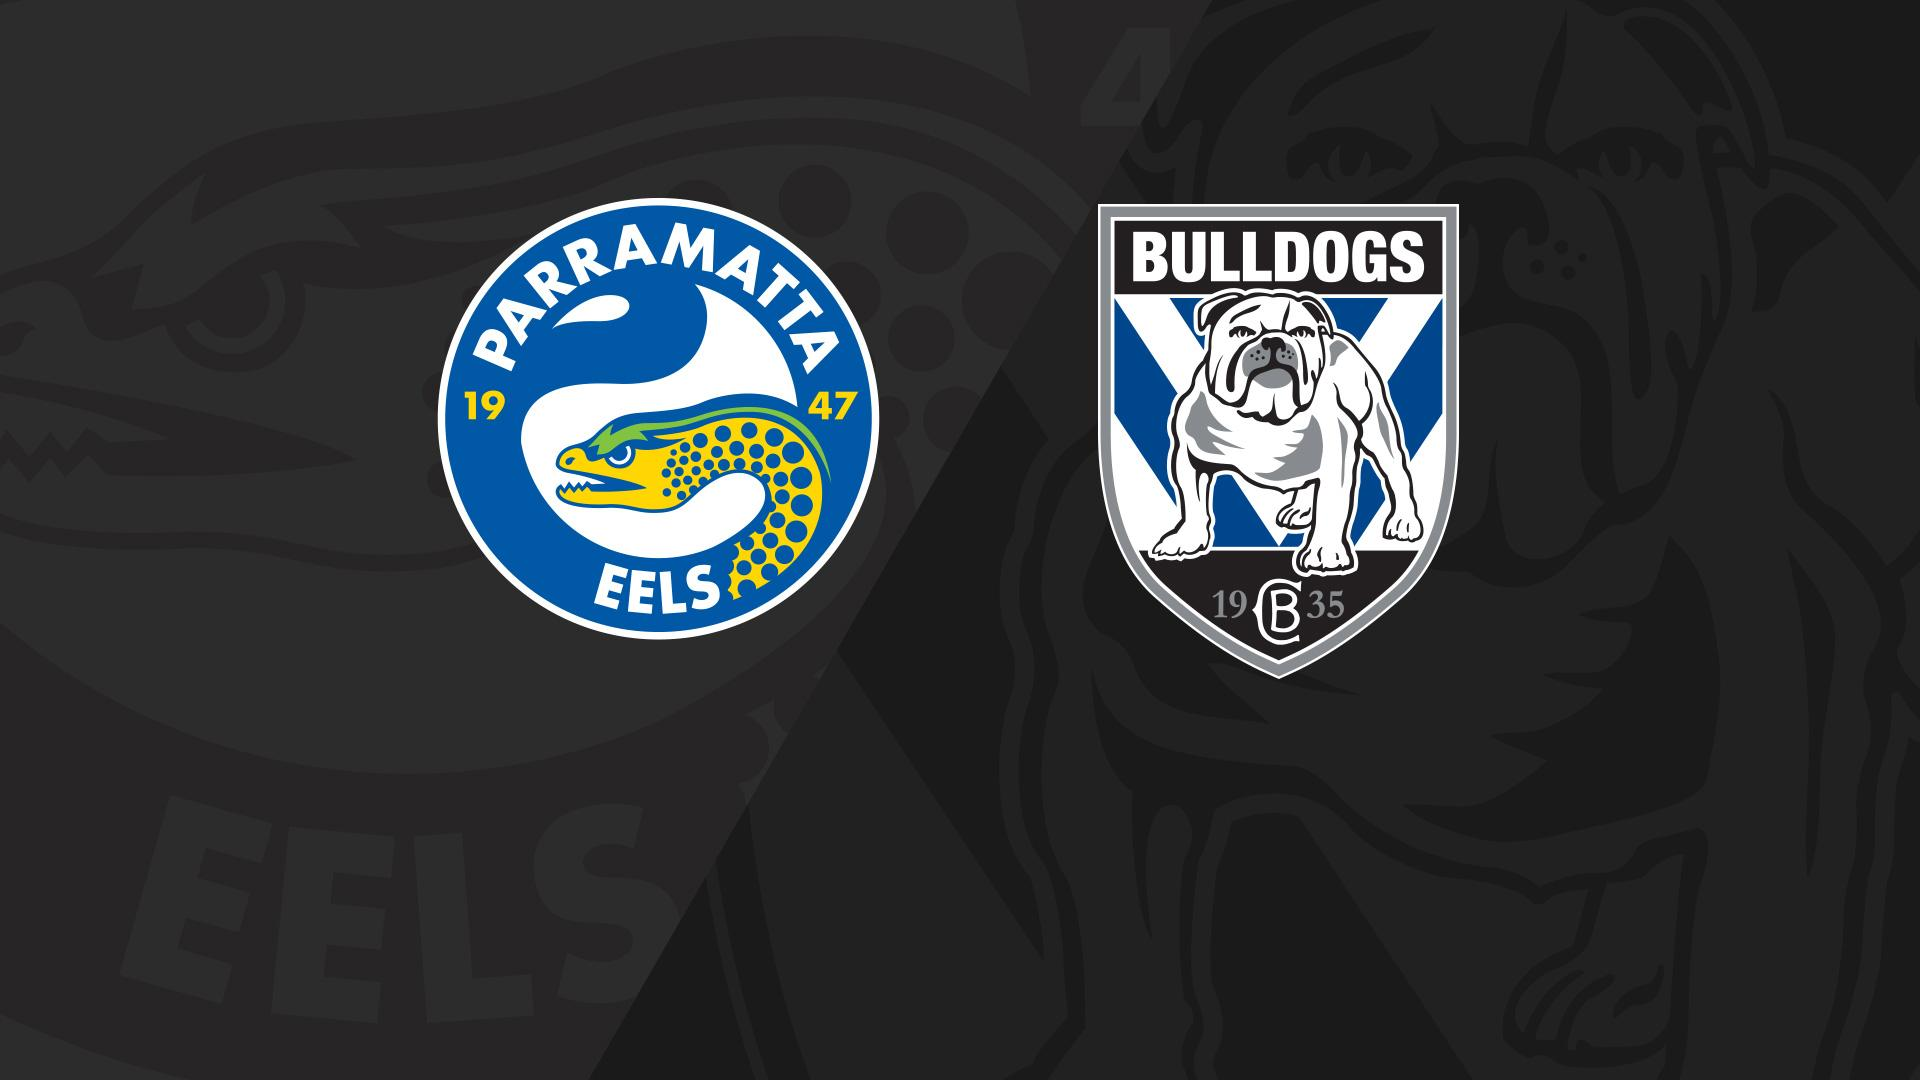 Full Match Replay: Eels v Bulldogs - Round 19, 2018